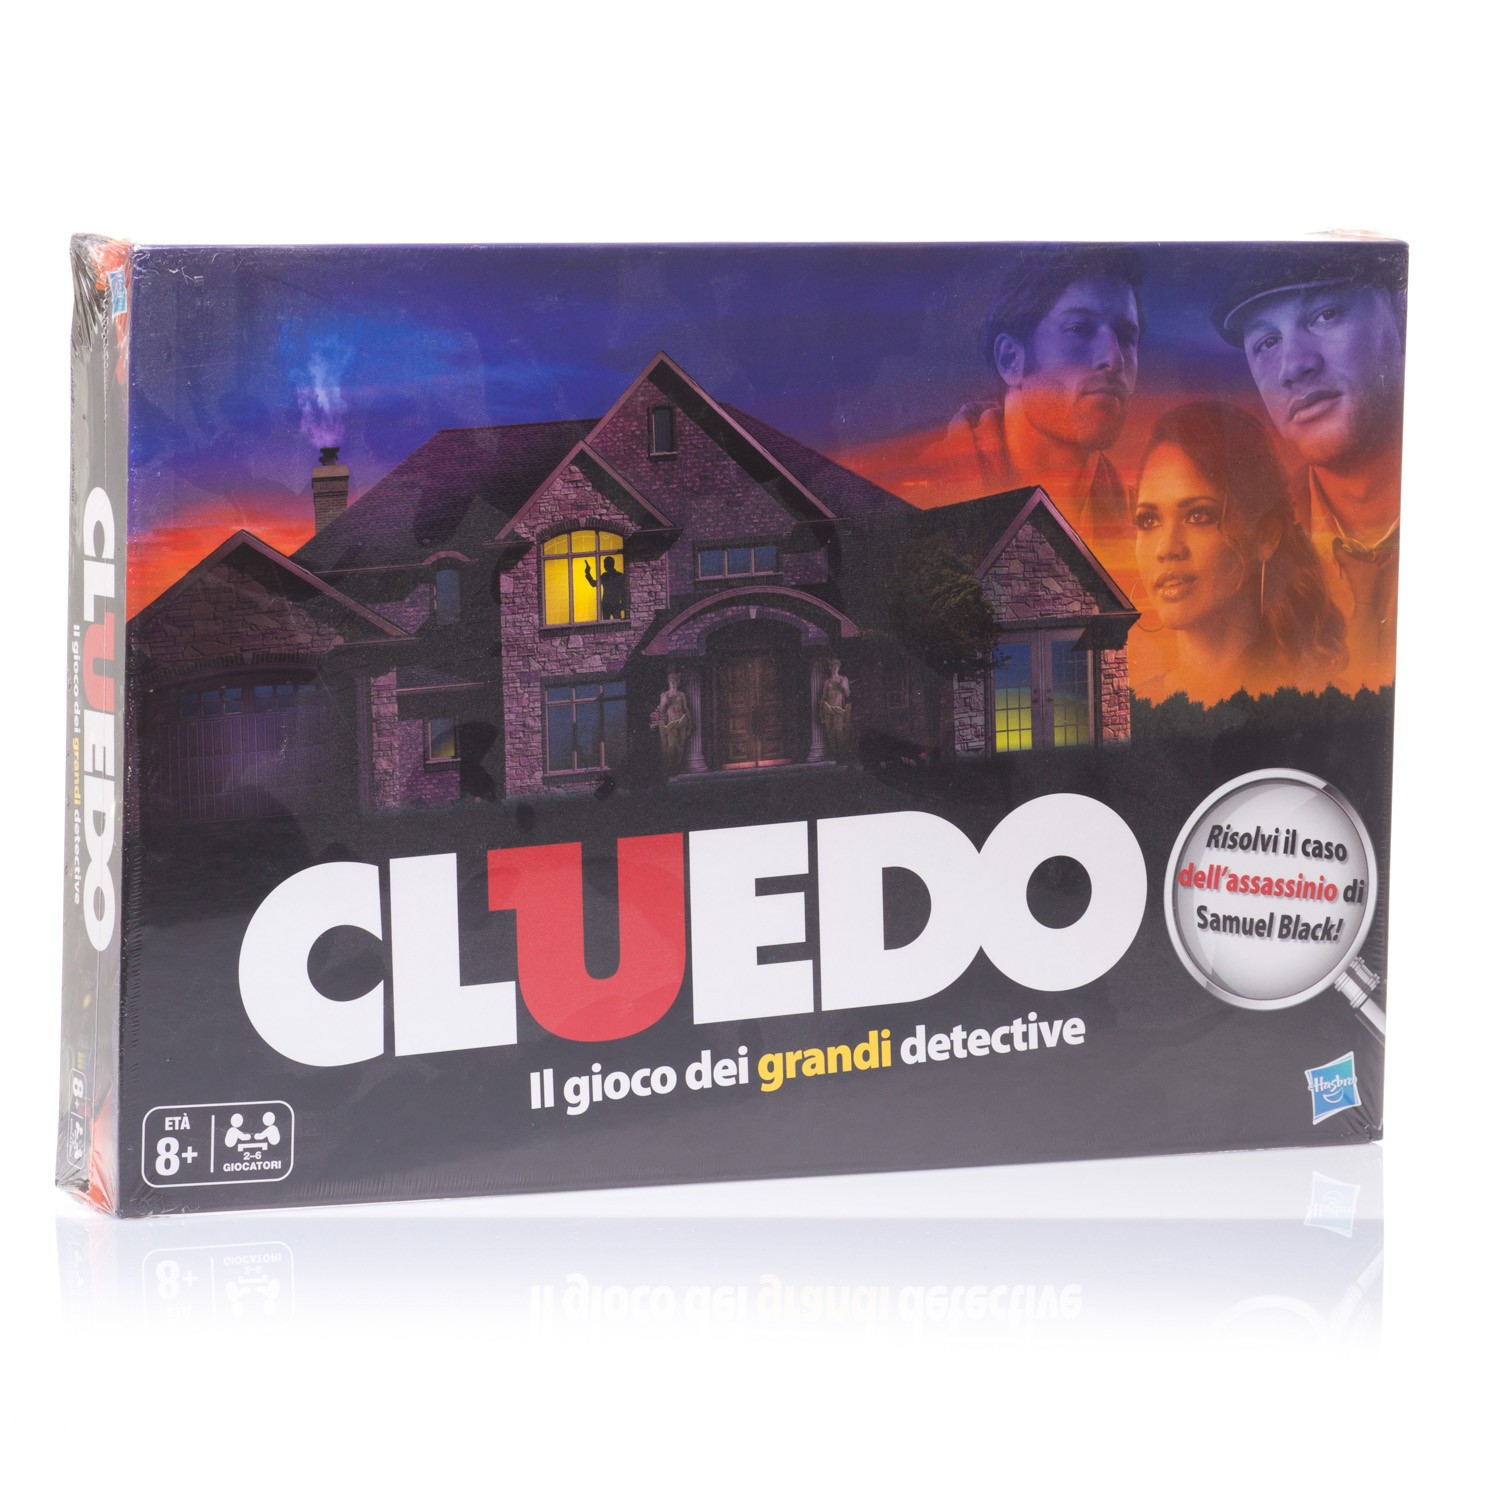 Cluedo reinvention